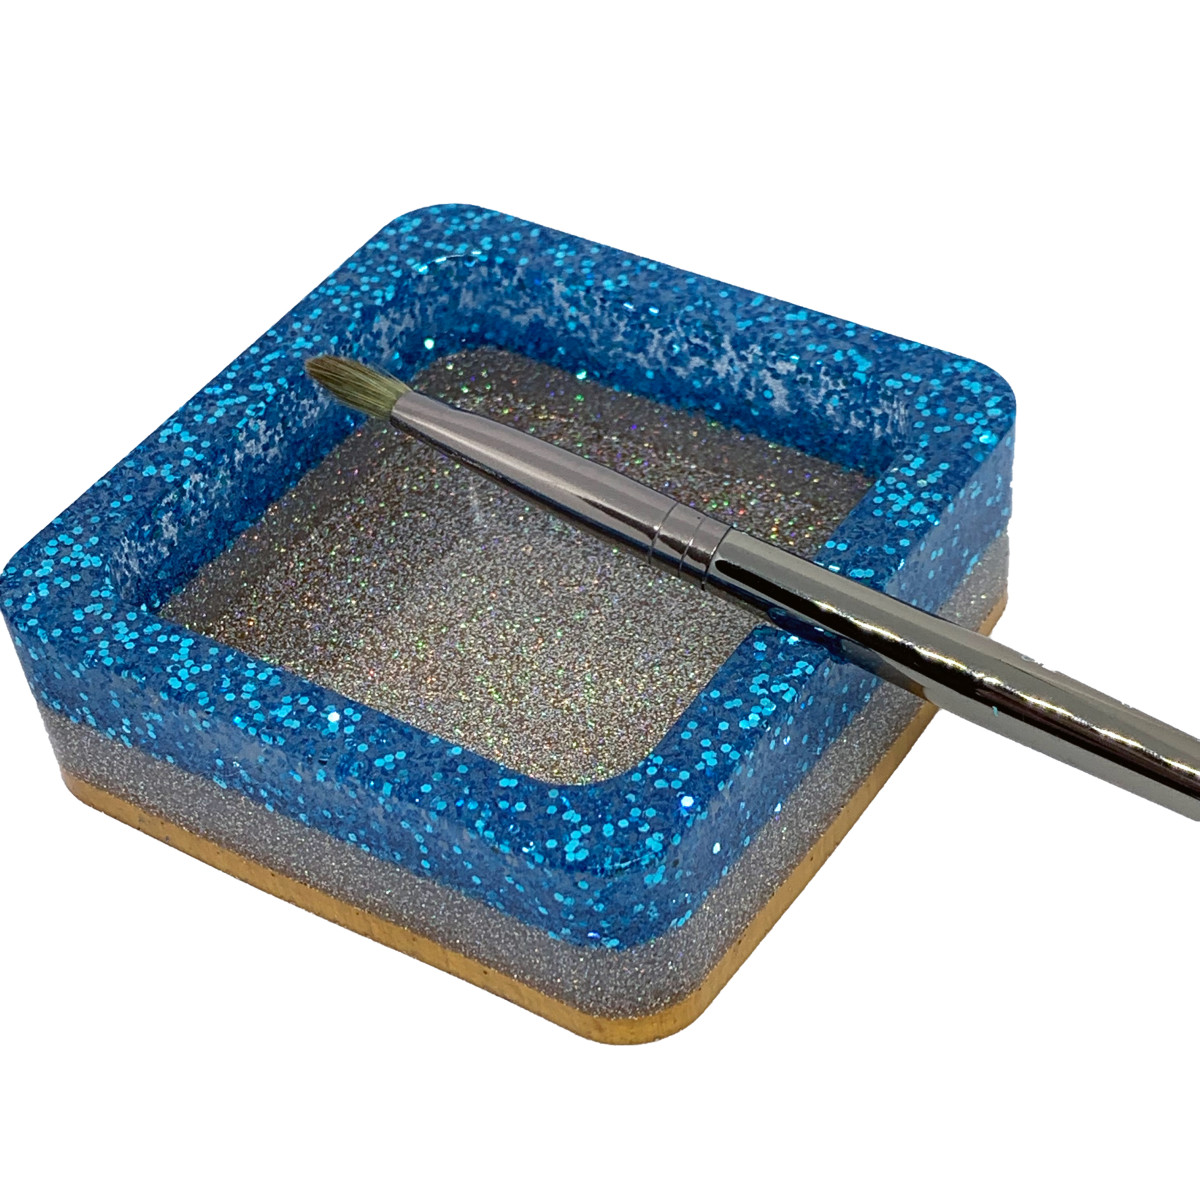 Resin Container - Square Paintbrush/Makeup Brush Holder - Ashtray #4 by Susi Schuele